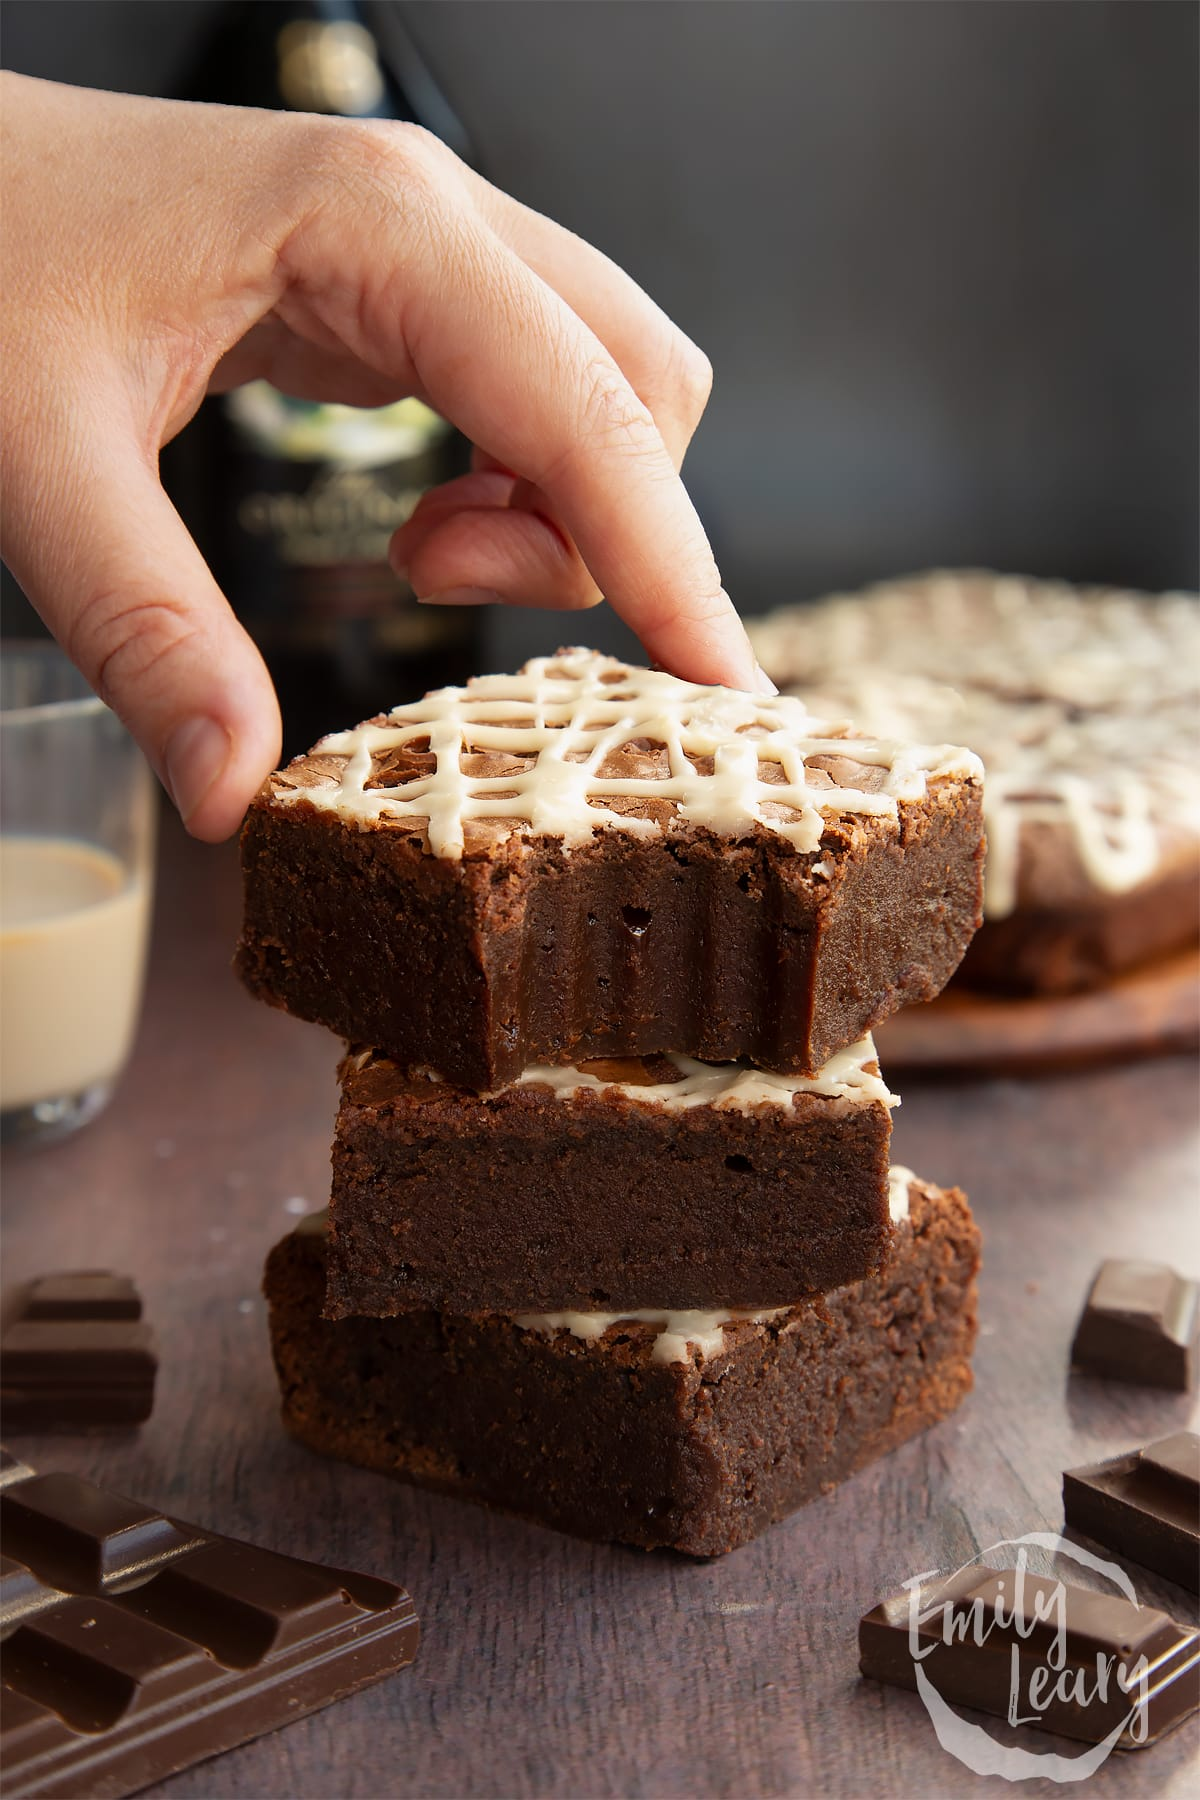 Stack of iced Baileys brownies, with more brownies and a bottle of Baileys in the background. One has a bite out if and a hand reaches for it.